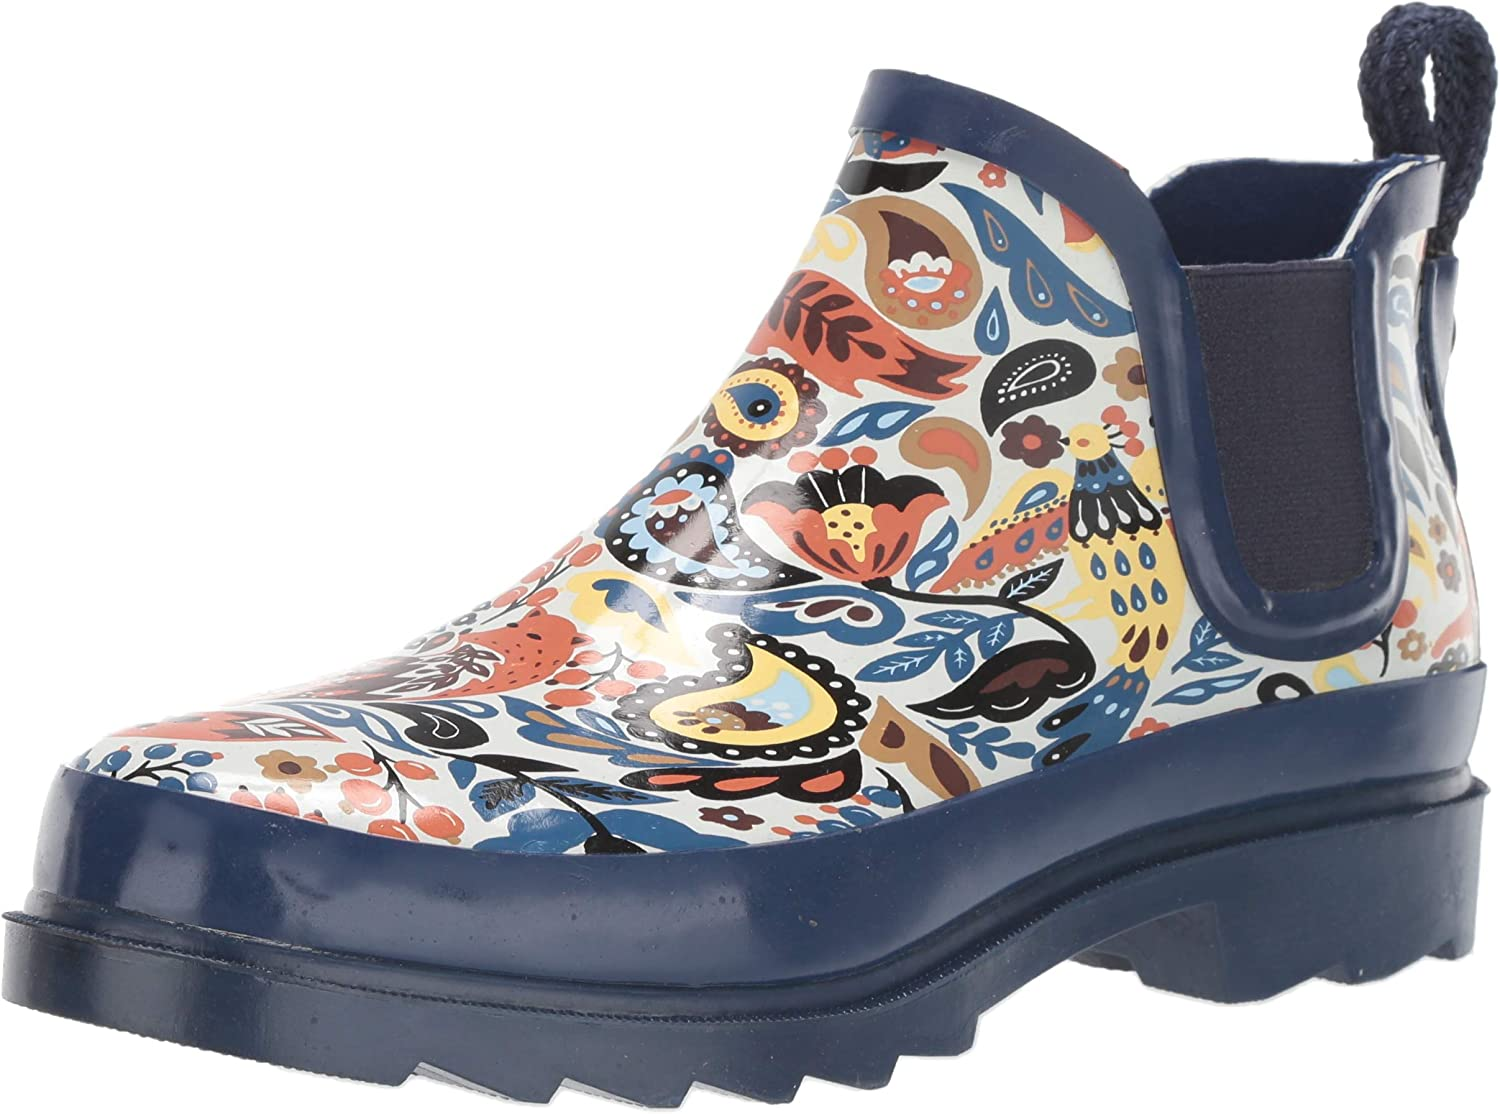 The Sak Women's Sakroots Rhyme Ankle Rainboot Rain Boot